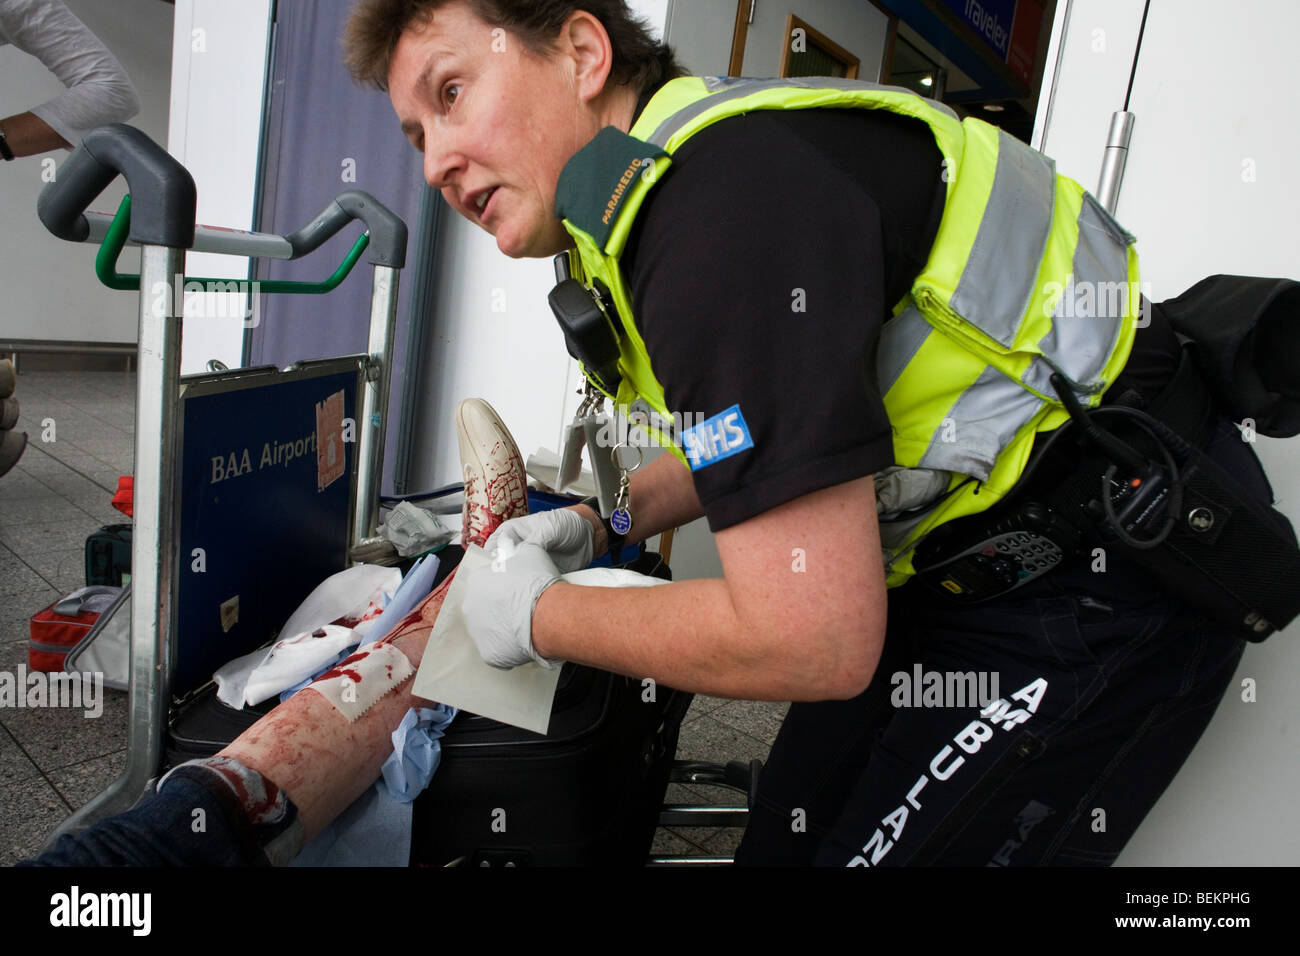 A female paramedic helps a lady passenger in Heathrow airport's terminal 3 who has tripped on escalators, badly - Stock Image